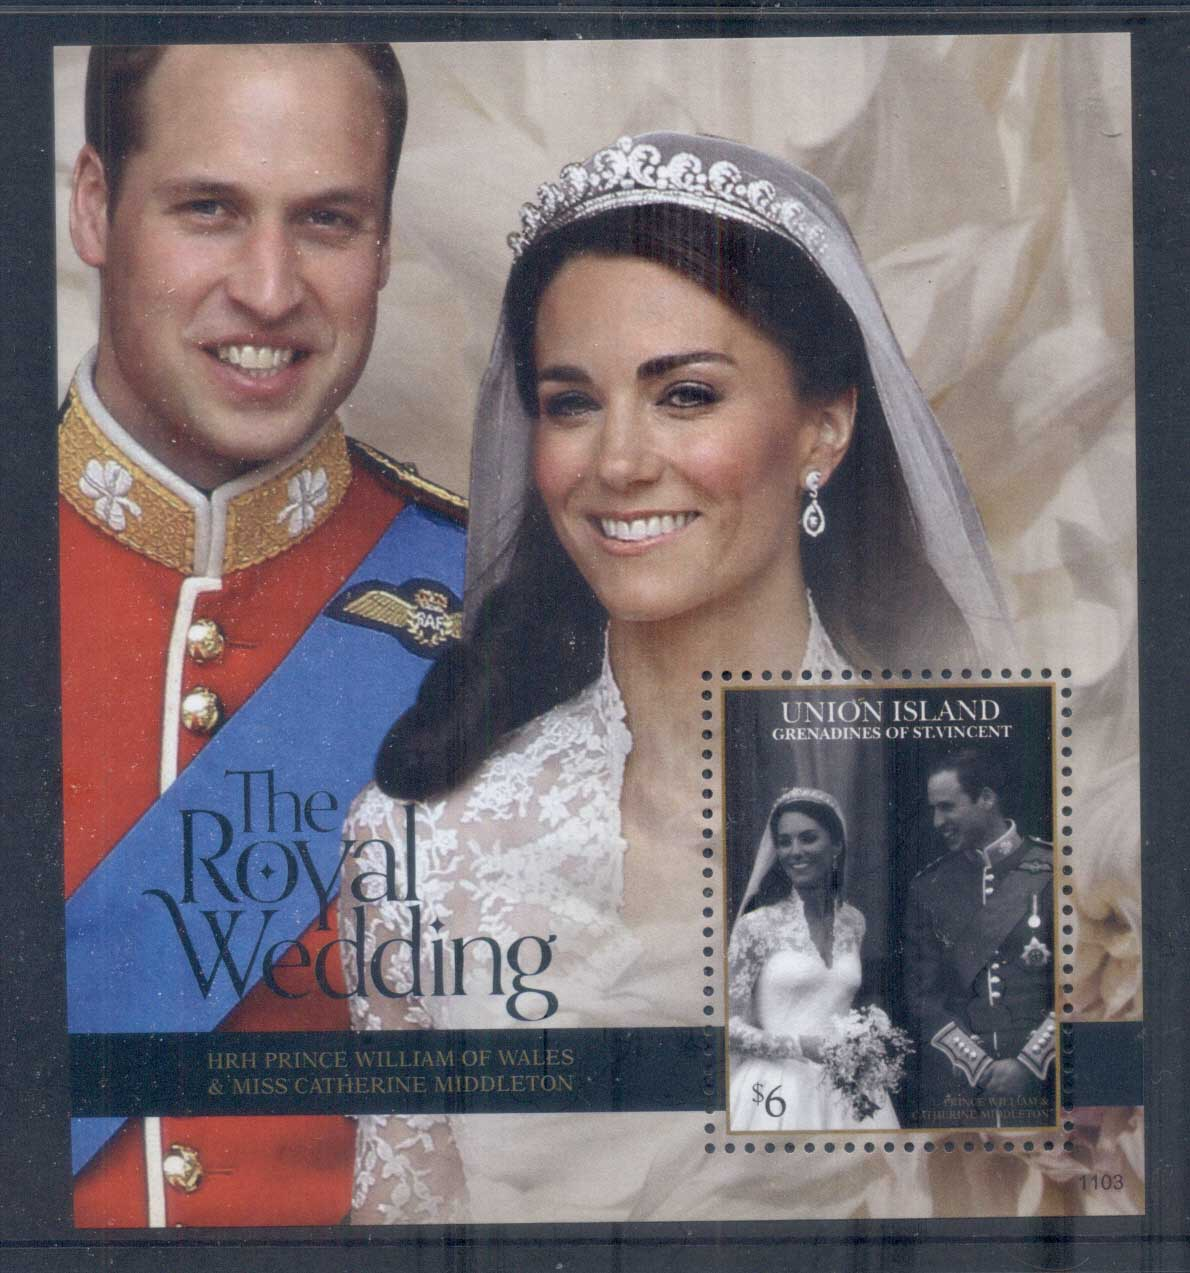 St Vincent Union Is 2011 Royal Wedding William & Kate #1103 $6 MS MUH